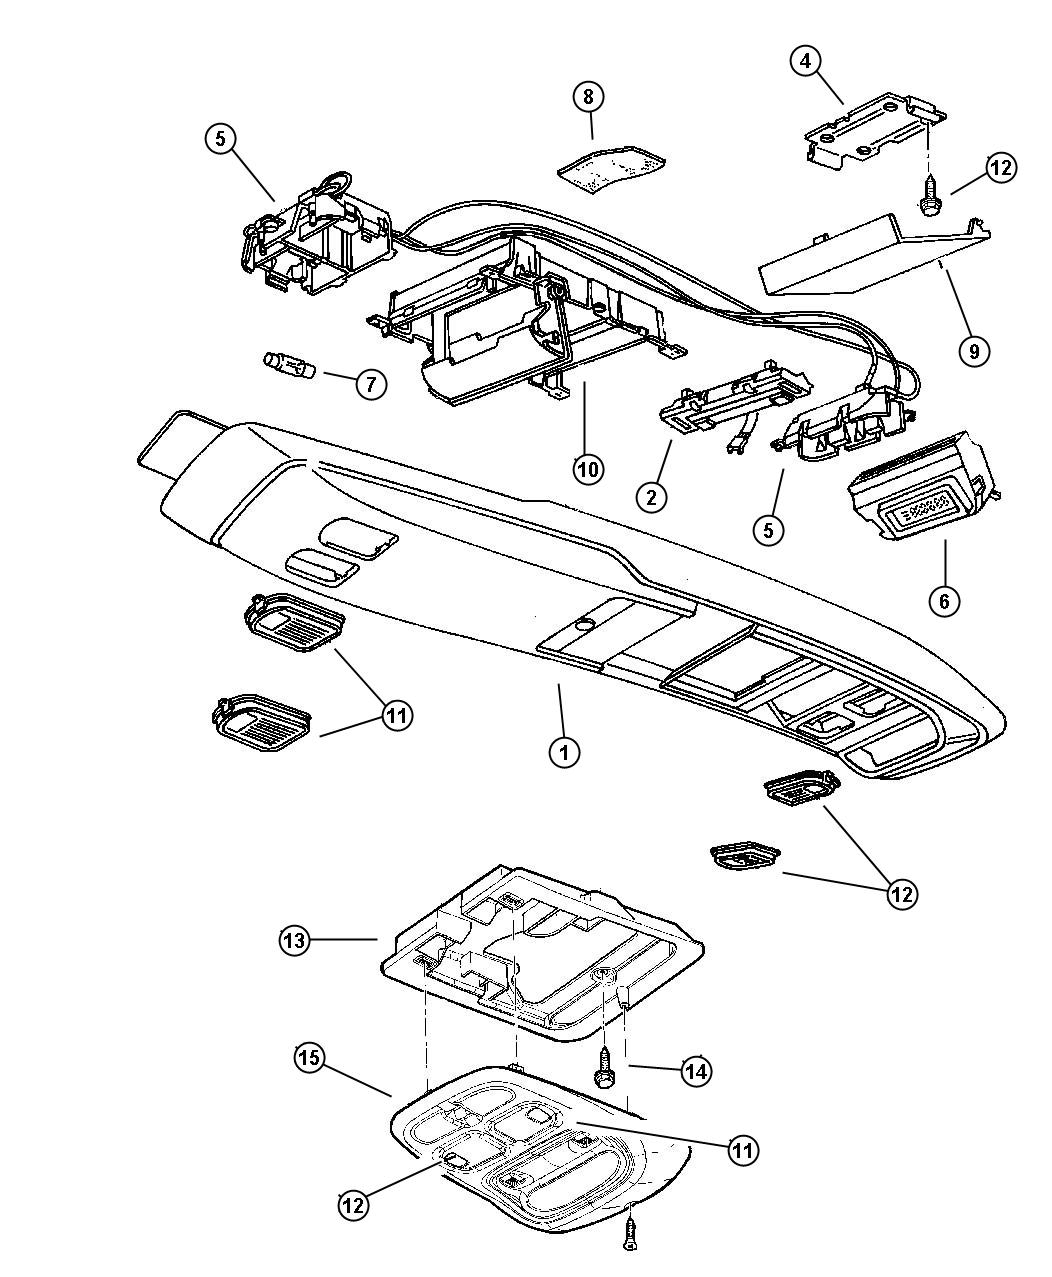 Jeep Grand Cherokee Wiring. Overhead console. Console